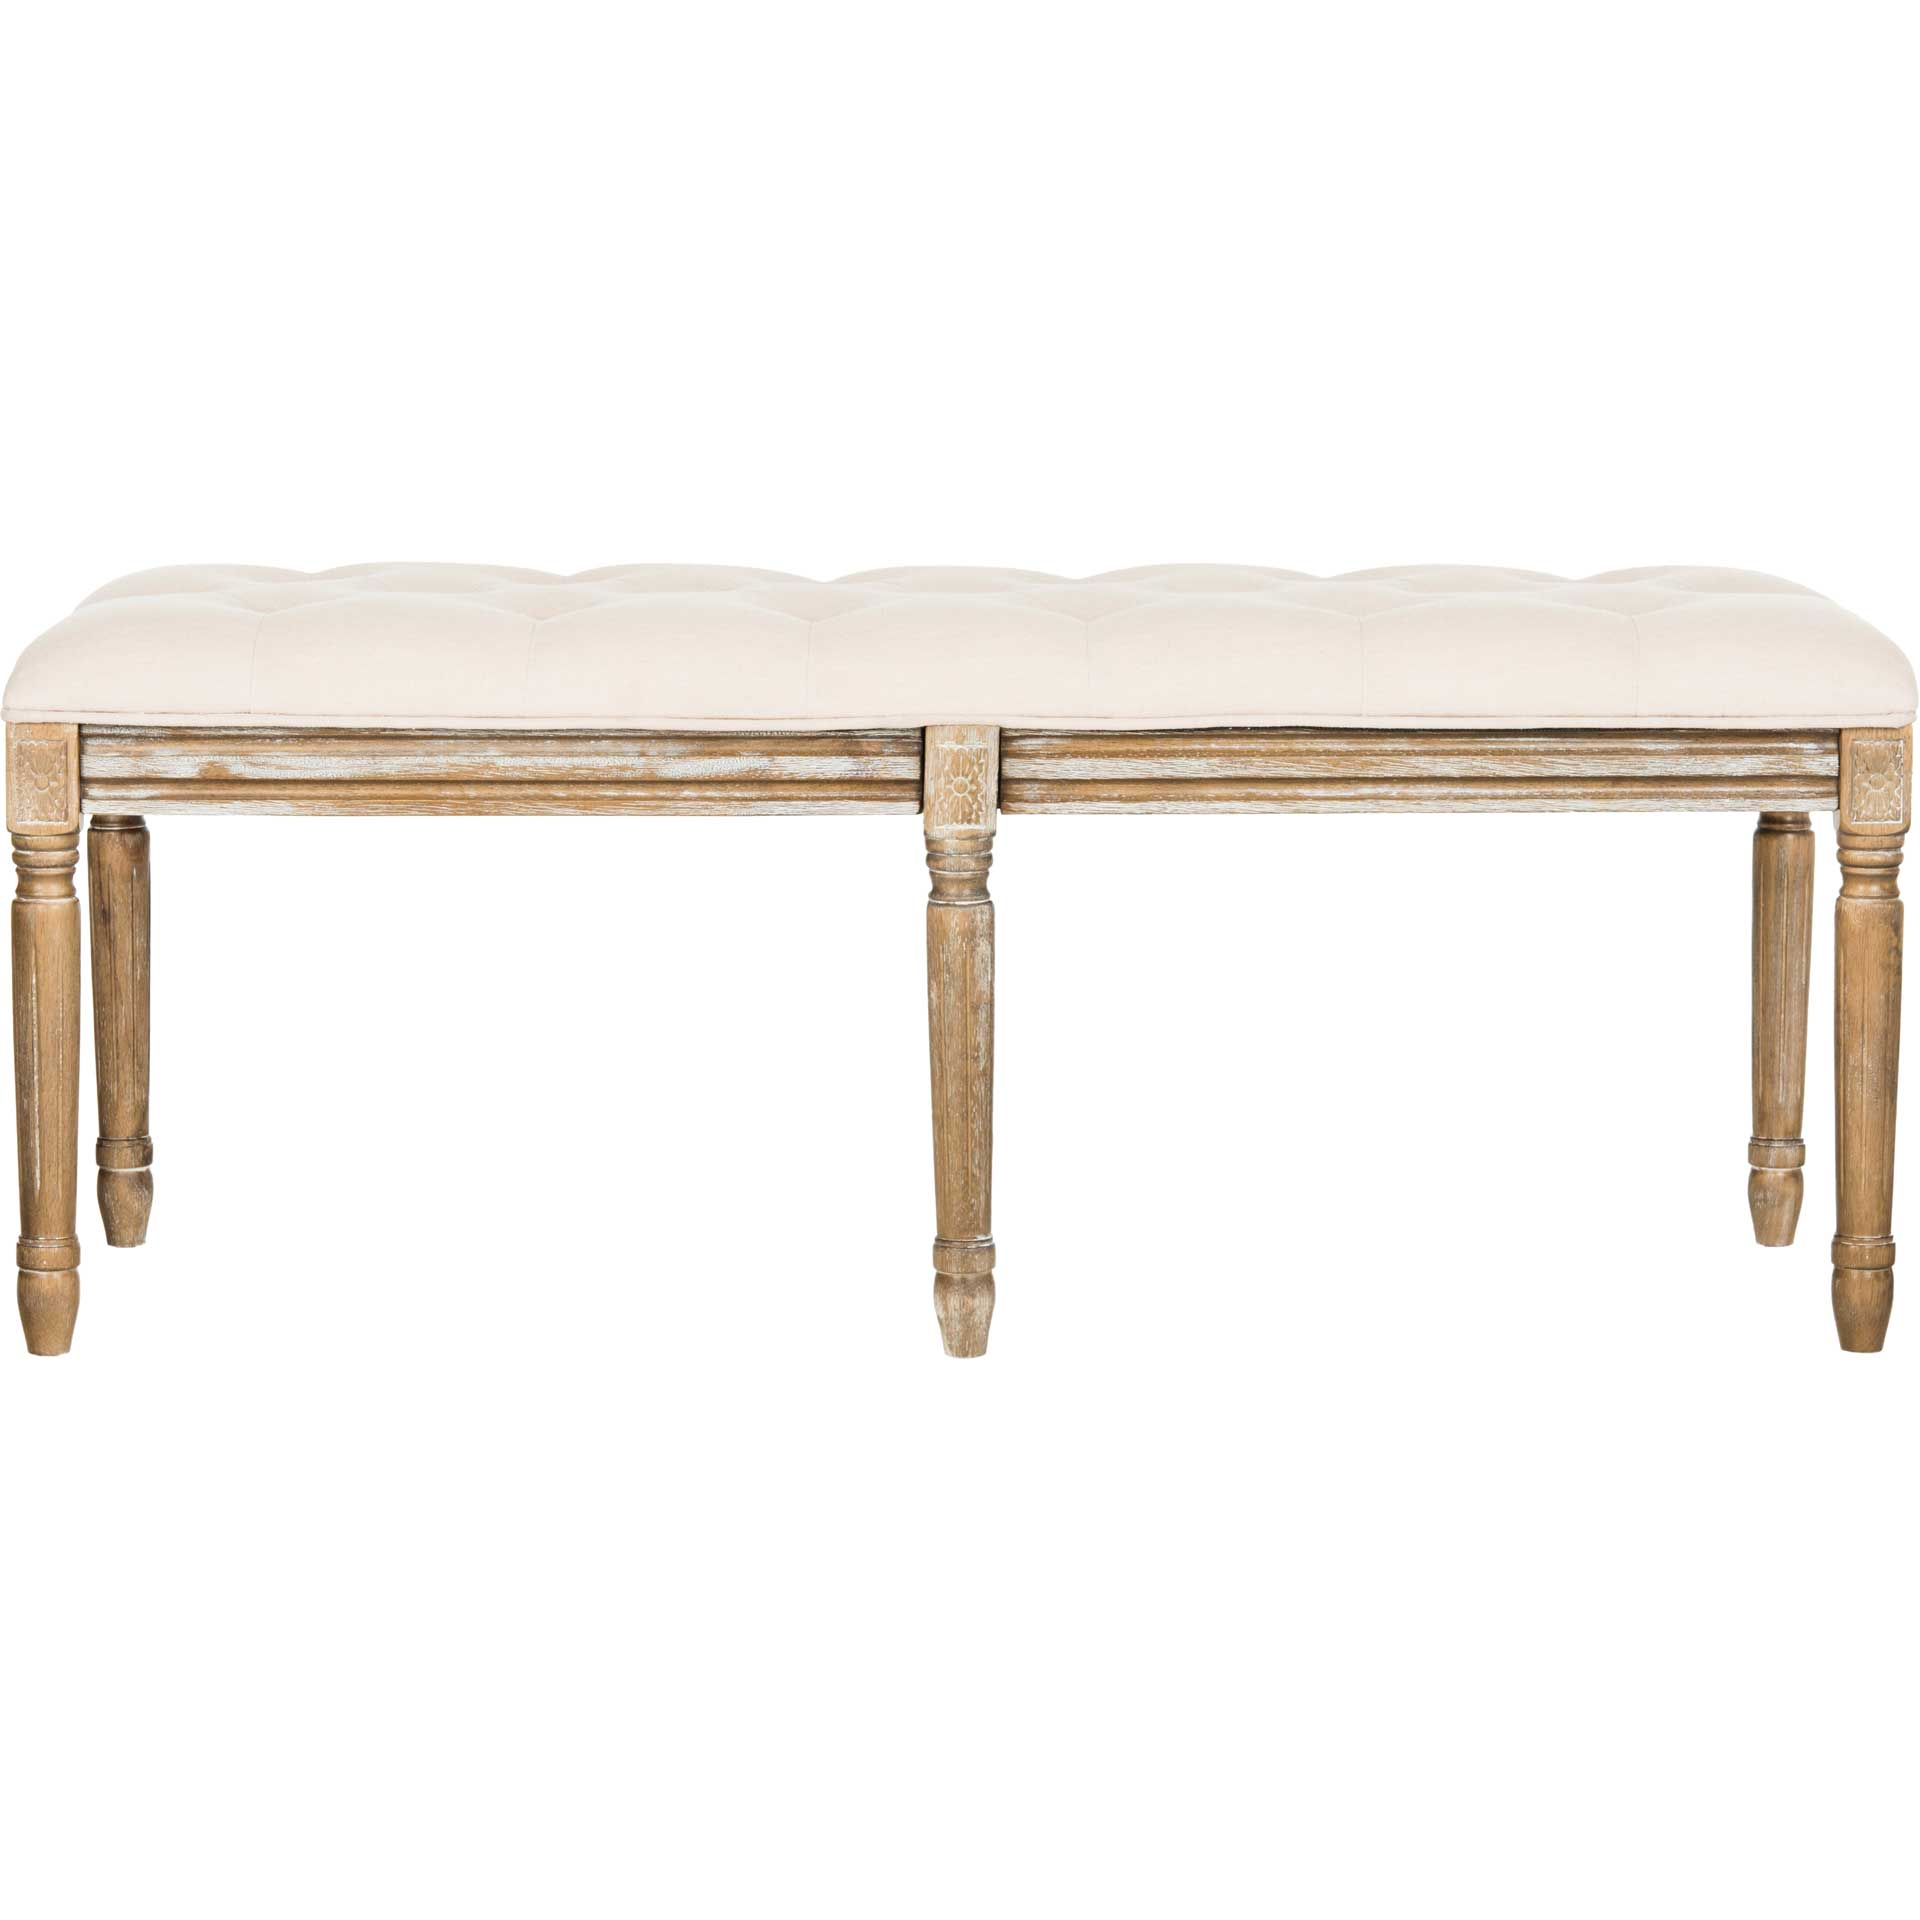 Roam Tufted Wood Bench Beige/Rustic Oak